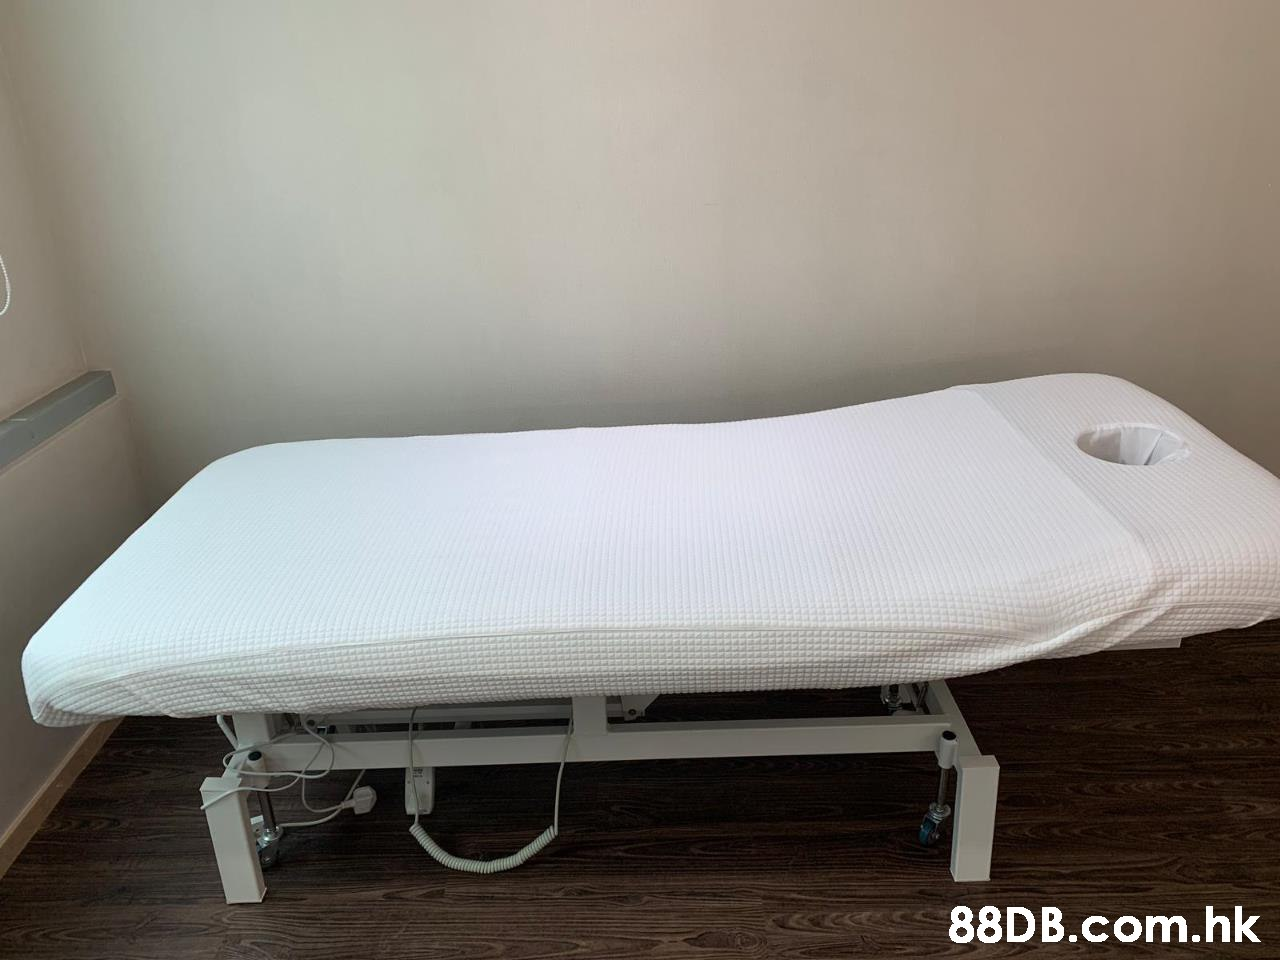 .hk  Furniture,Massage table,Mattress,Comfort,Bed